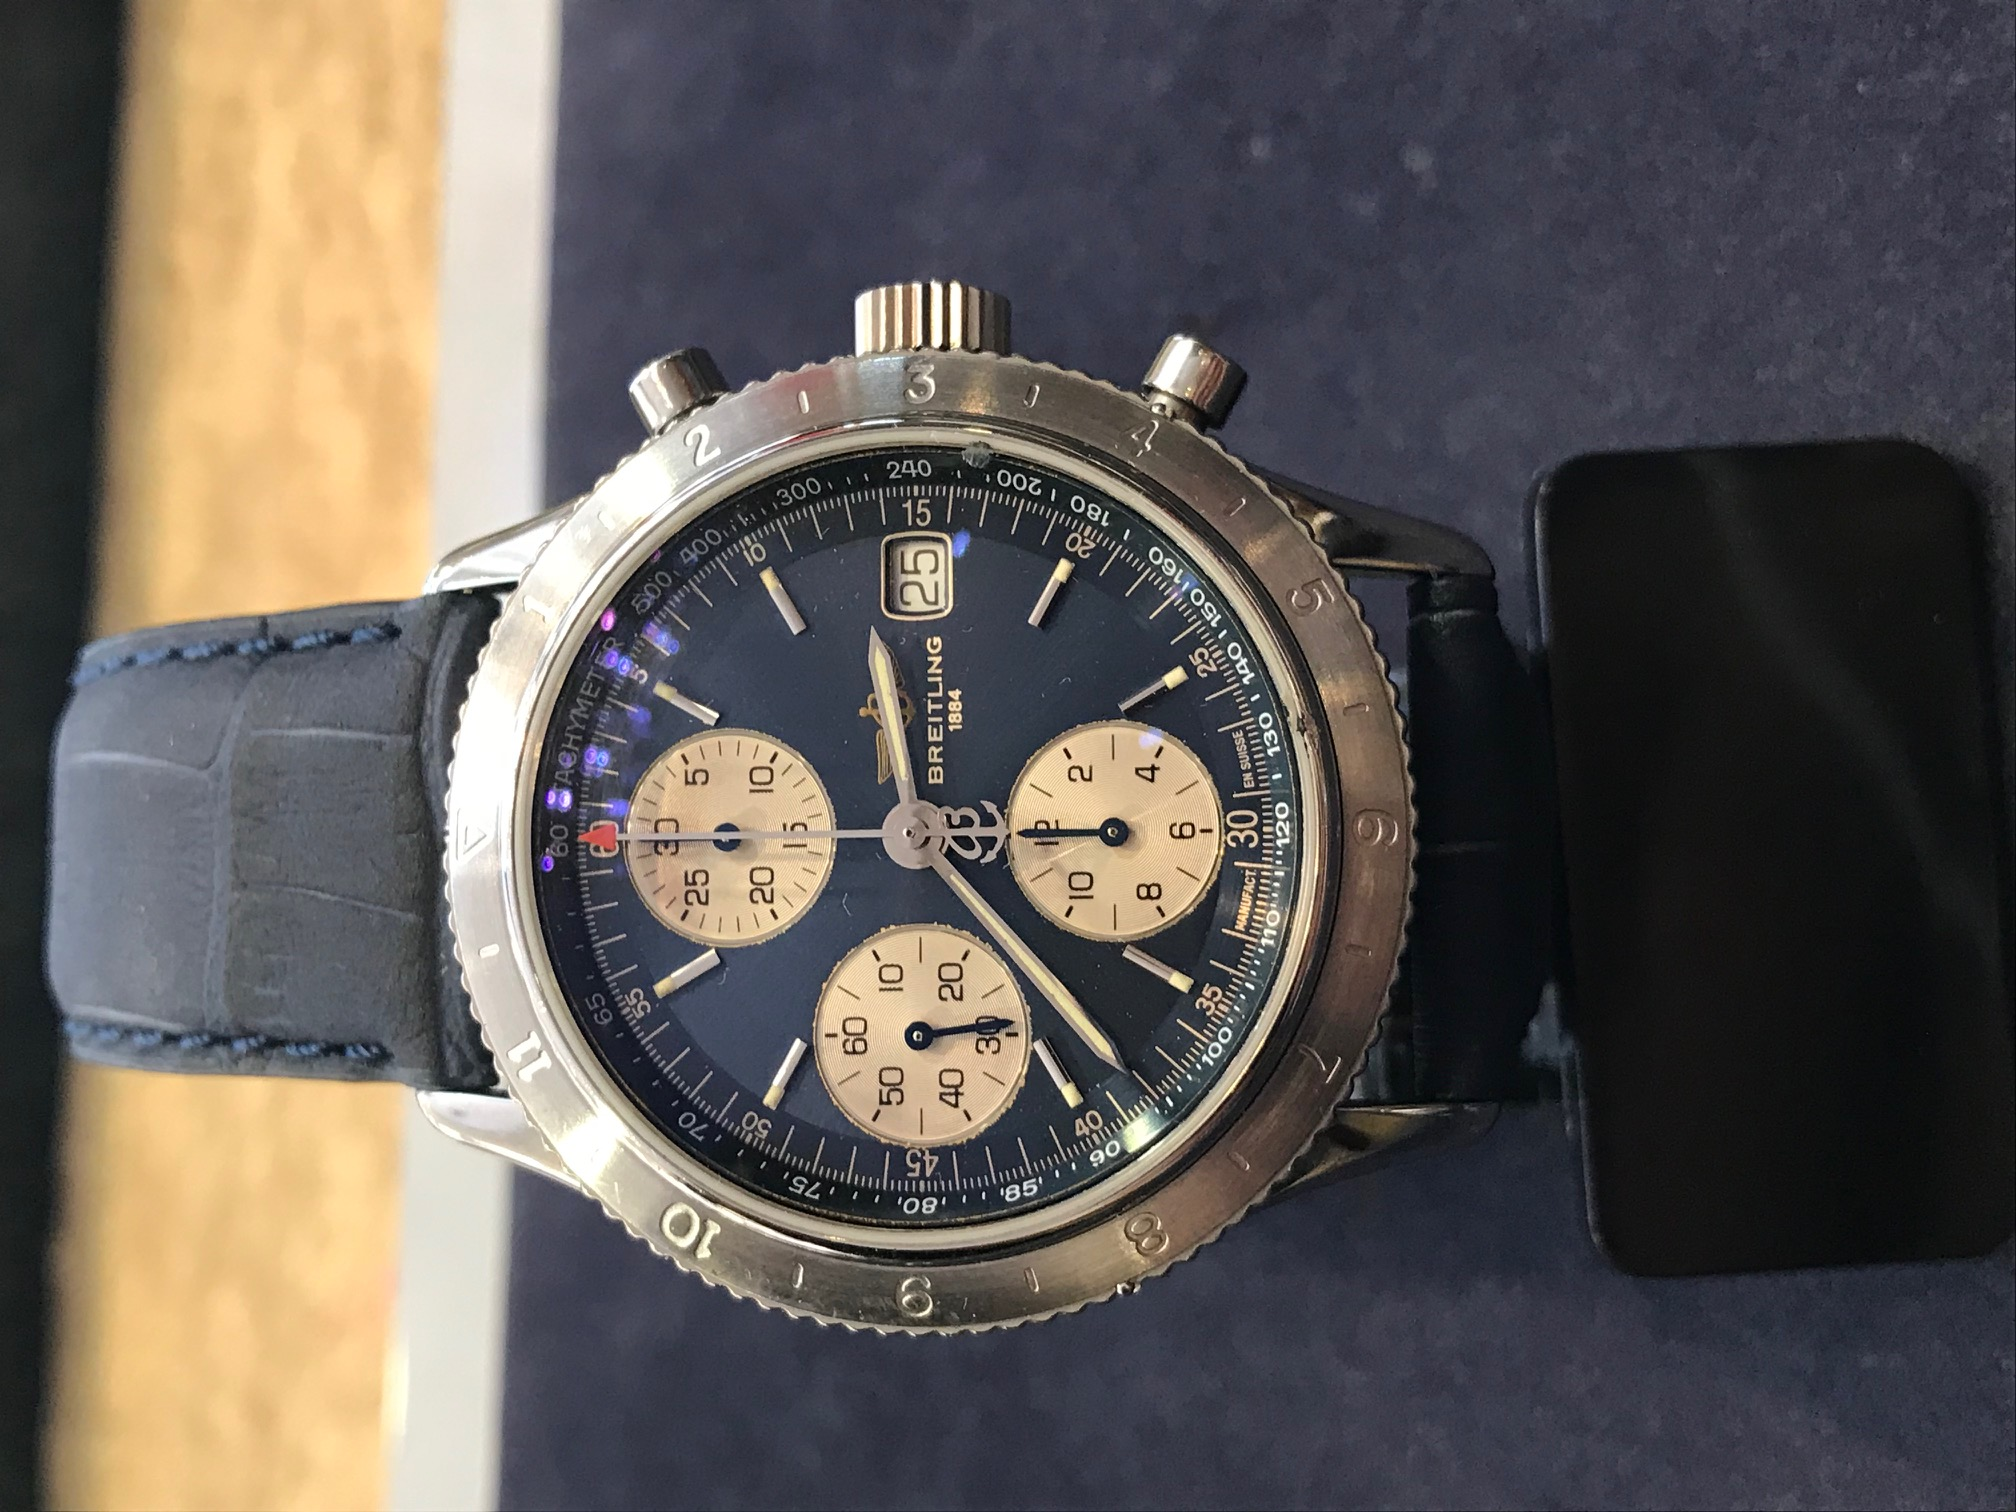 Breitling Chronomat 41mm, New Strap fusion Aquatic - Image 3 of 8